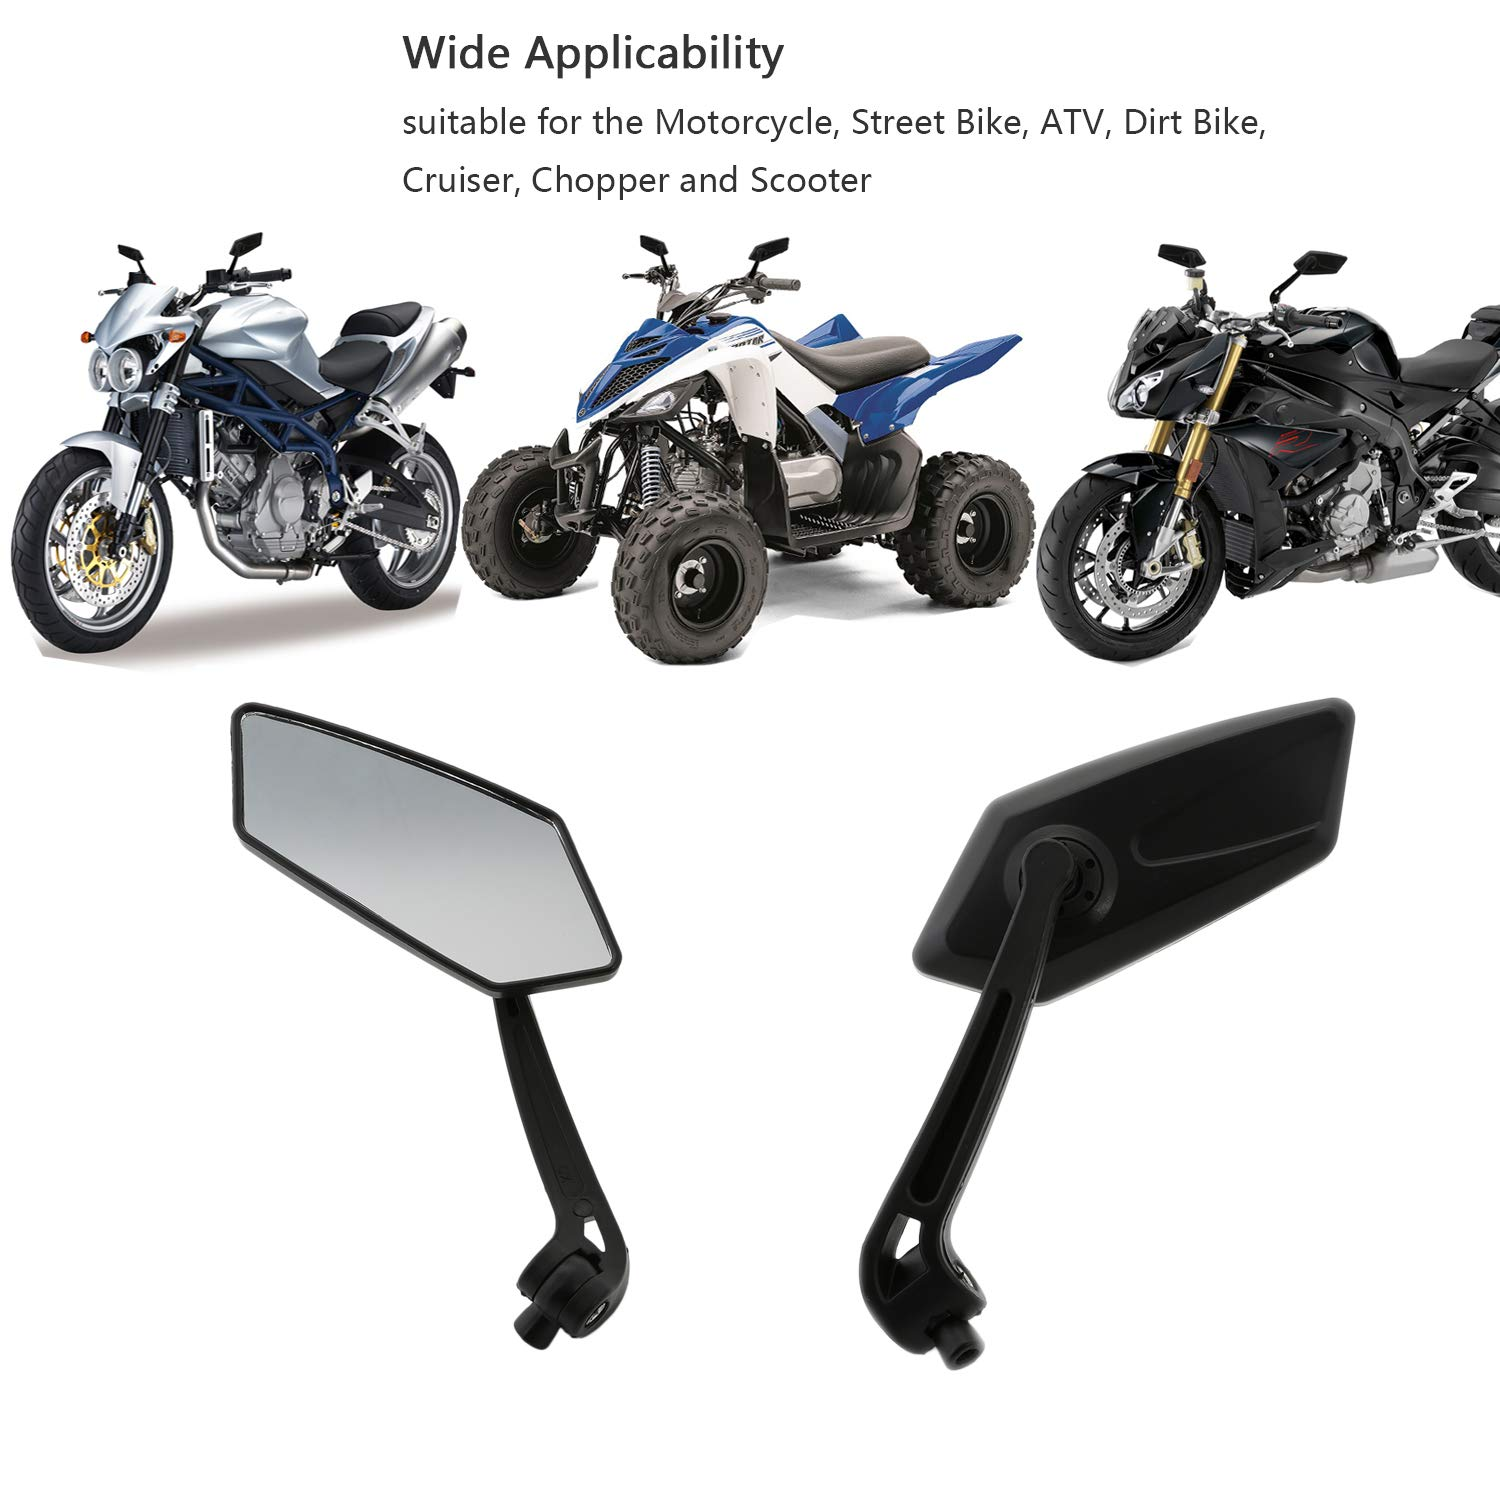 E MARKED PAIR MIRRORS BIKE MOTORCYCLE SCOOTER QUAD SPORTS RIGHT LEFT THREAD 8 10